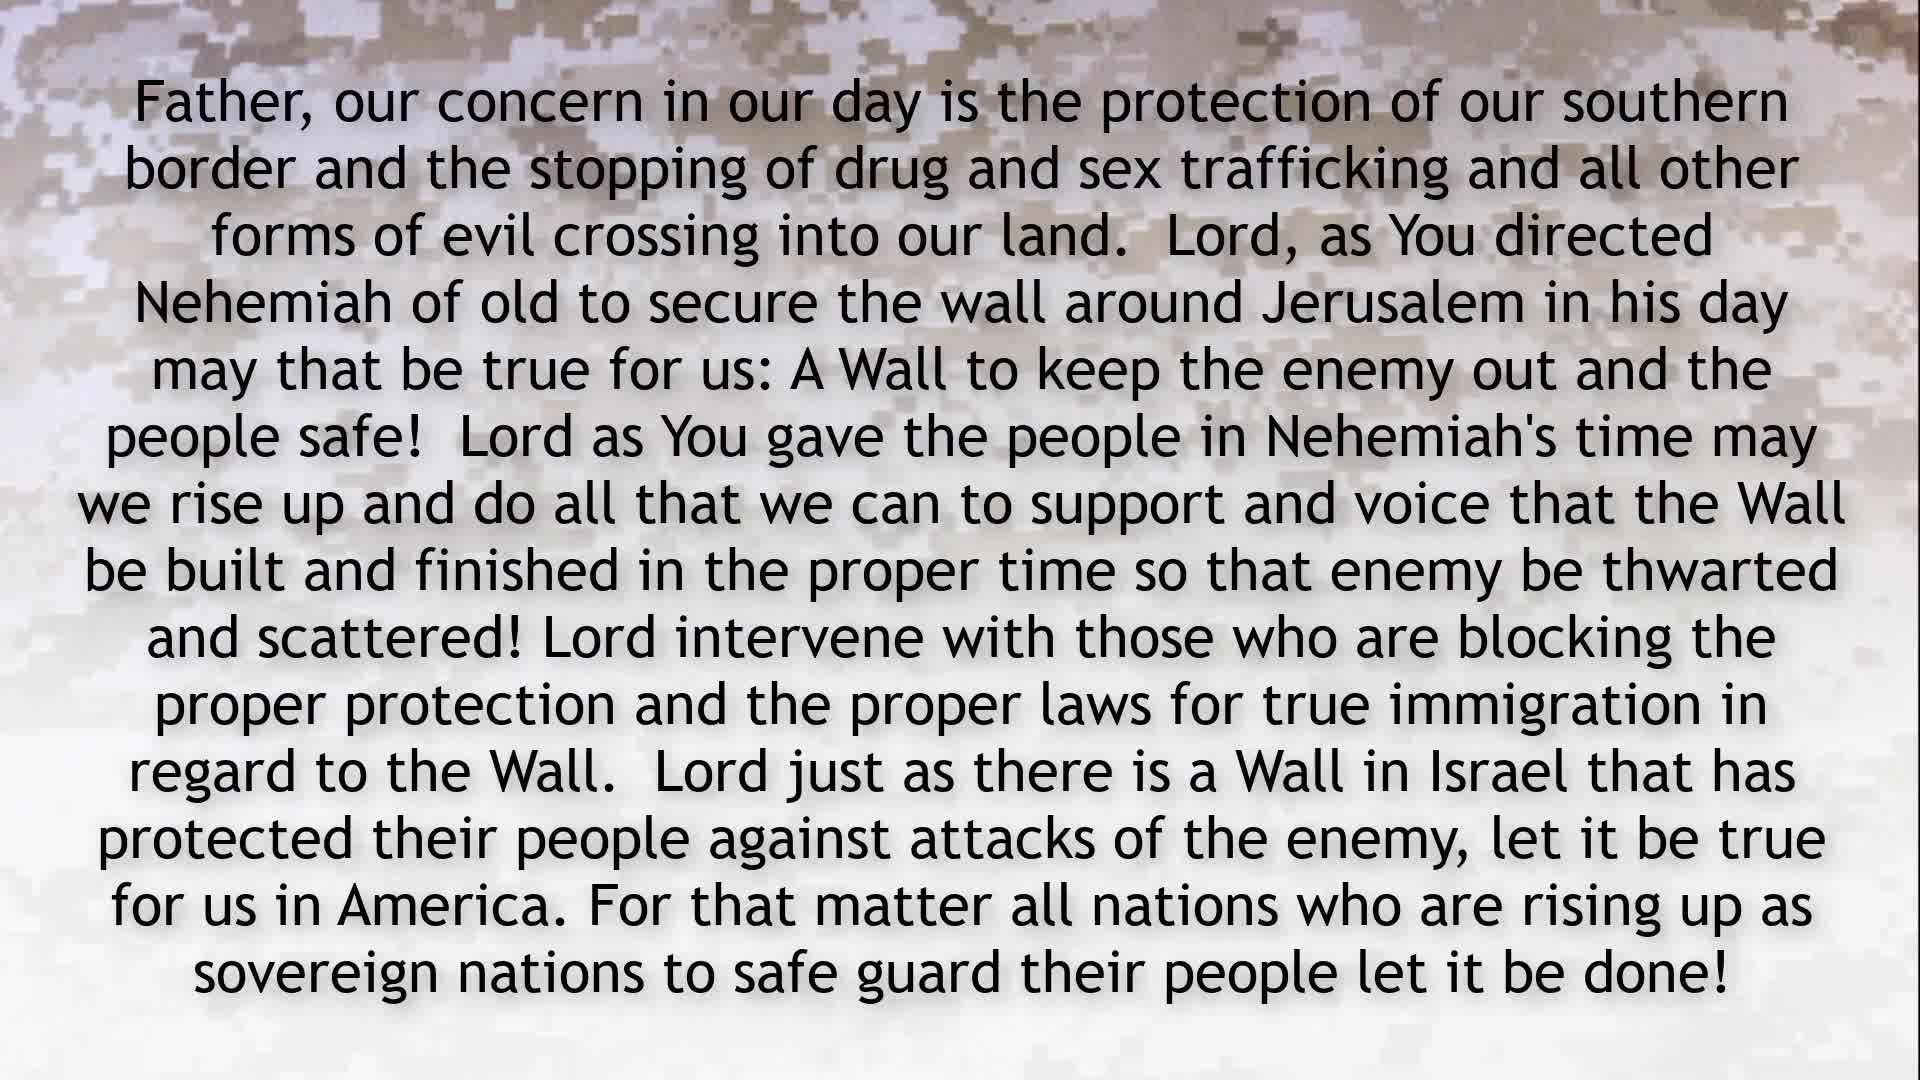 PRAYER FOCUS IN ONE ACCORD WE SAY BUILD THE WALL AS GOD HAS PLANNED FOR US!